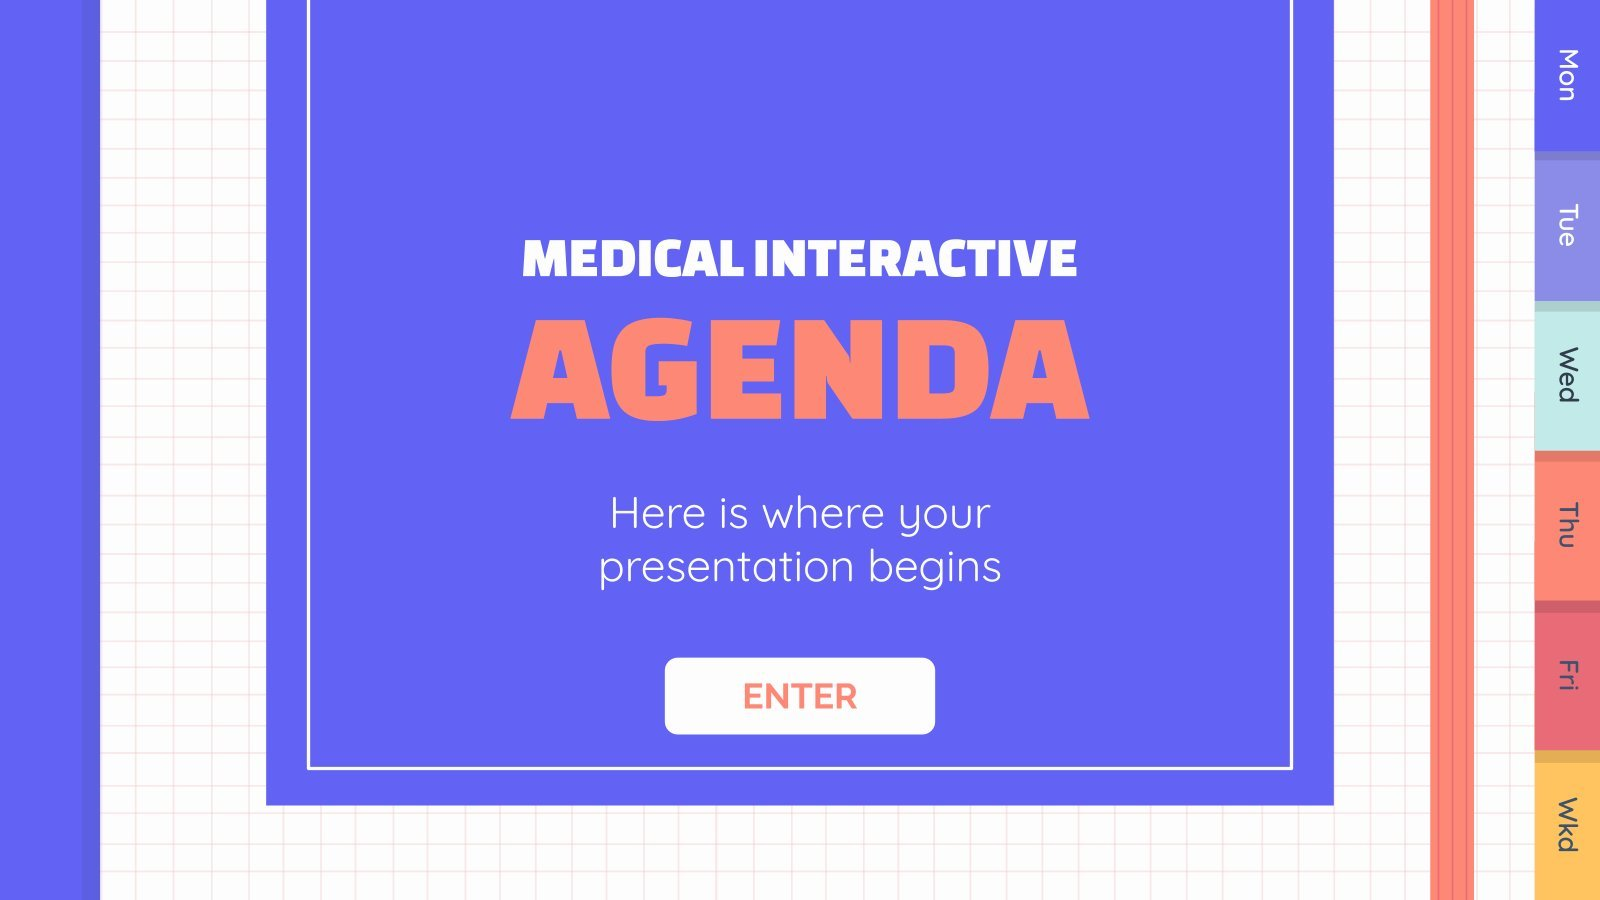 Medical Interactive Agenda presentation template